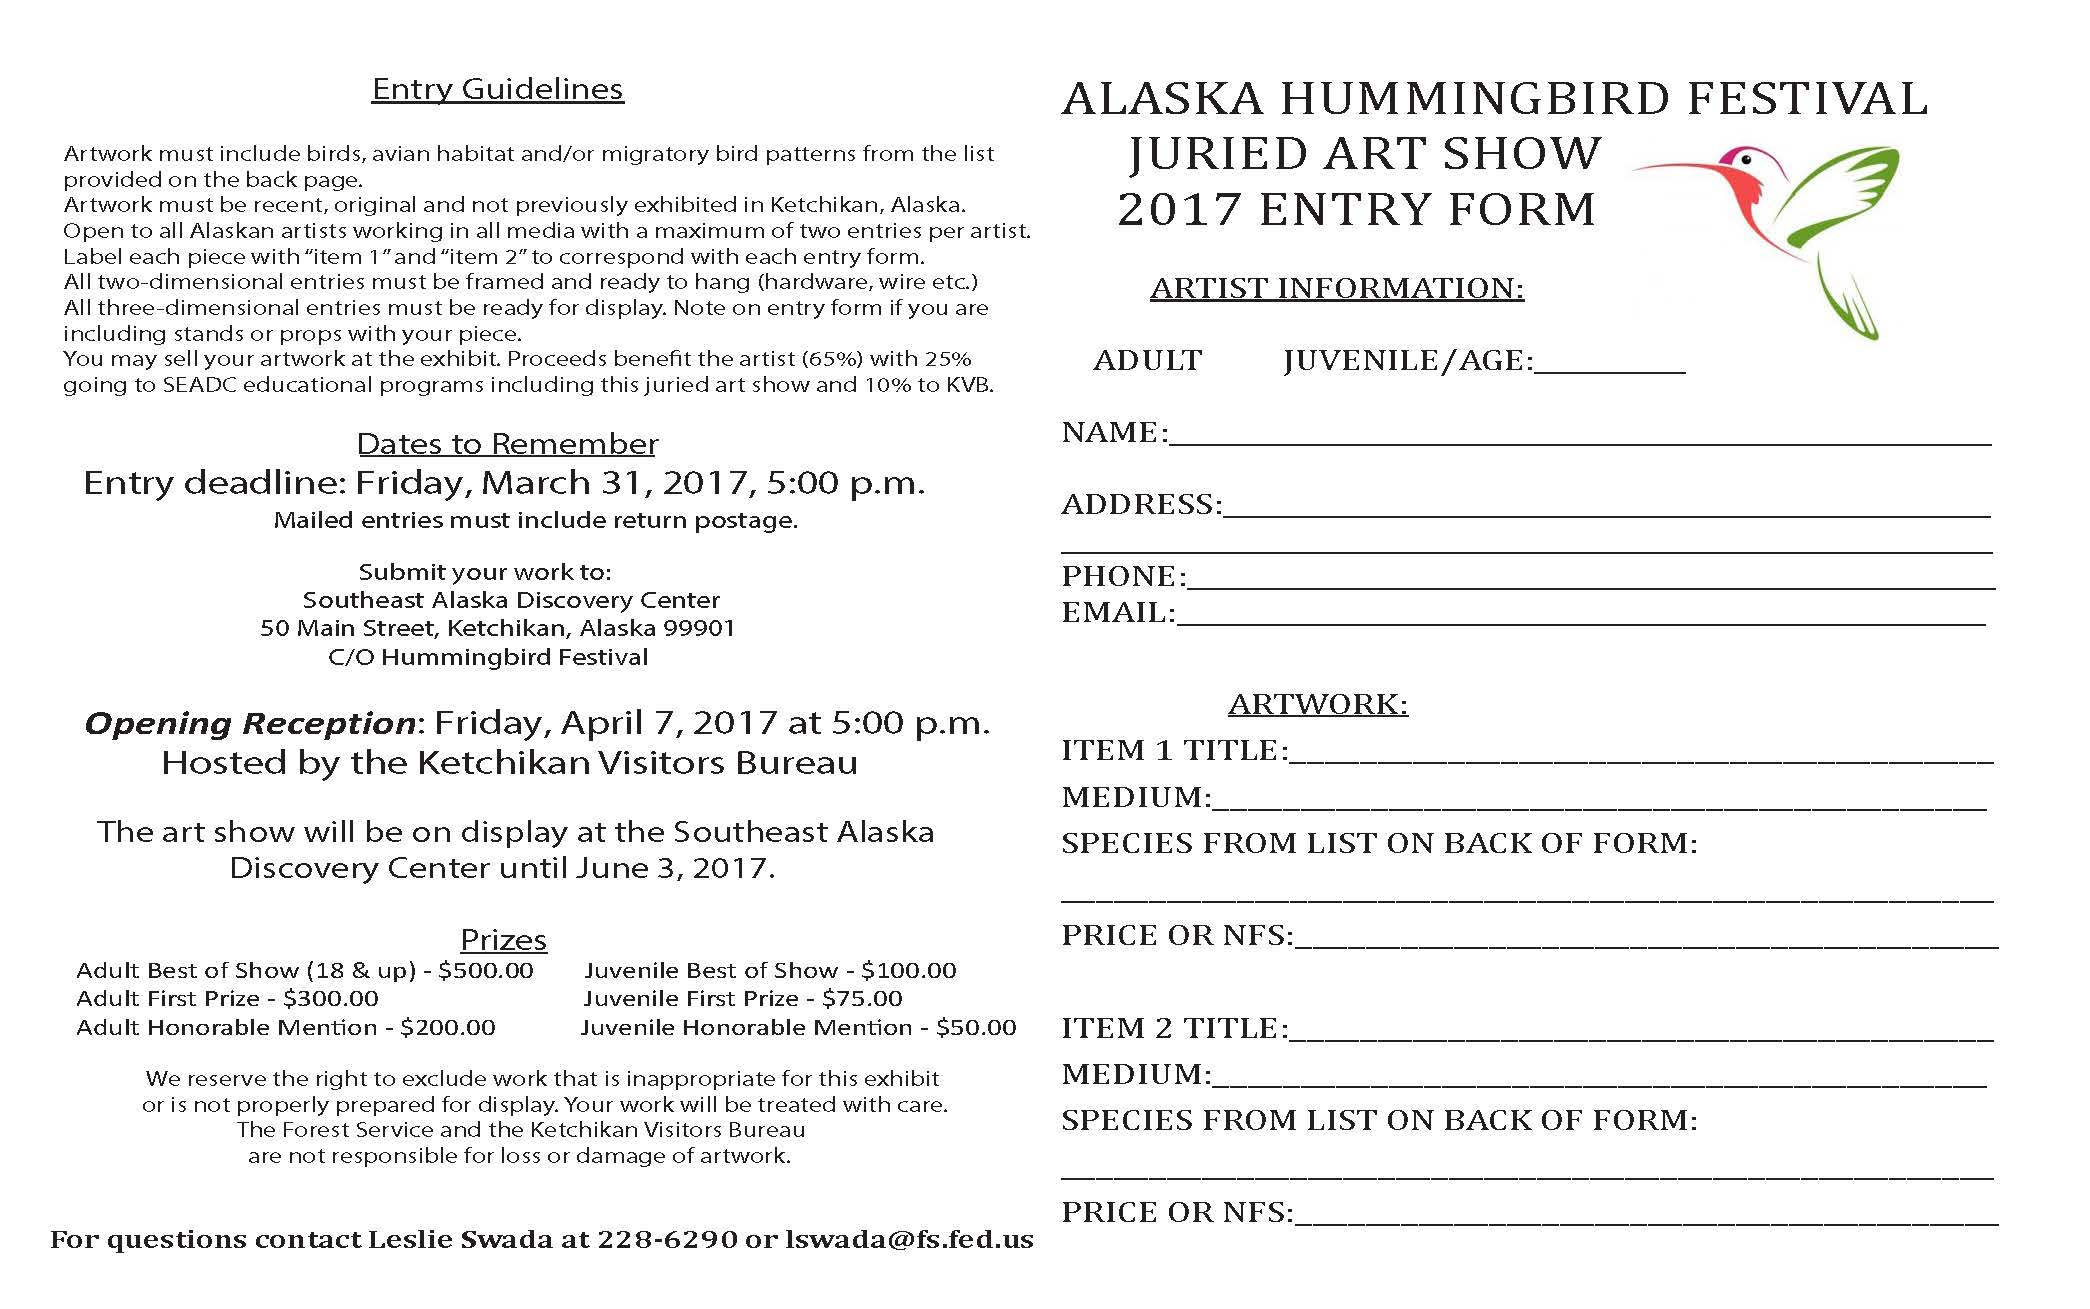 2017 Juried Hummingbird Art Show Form